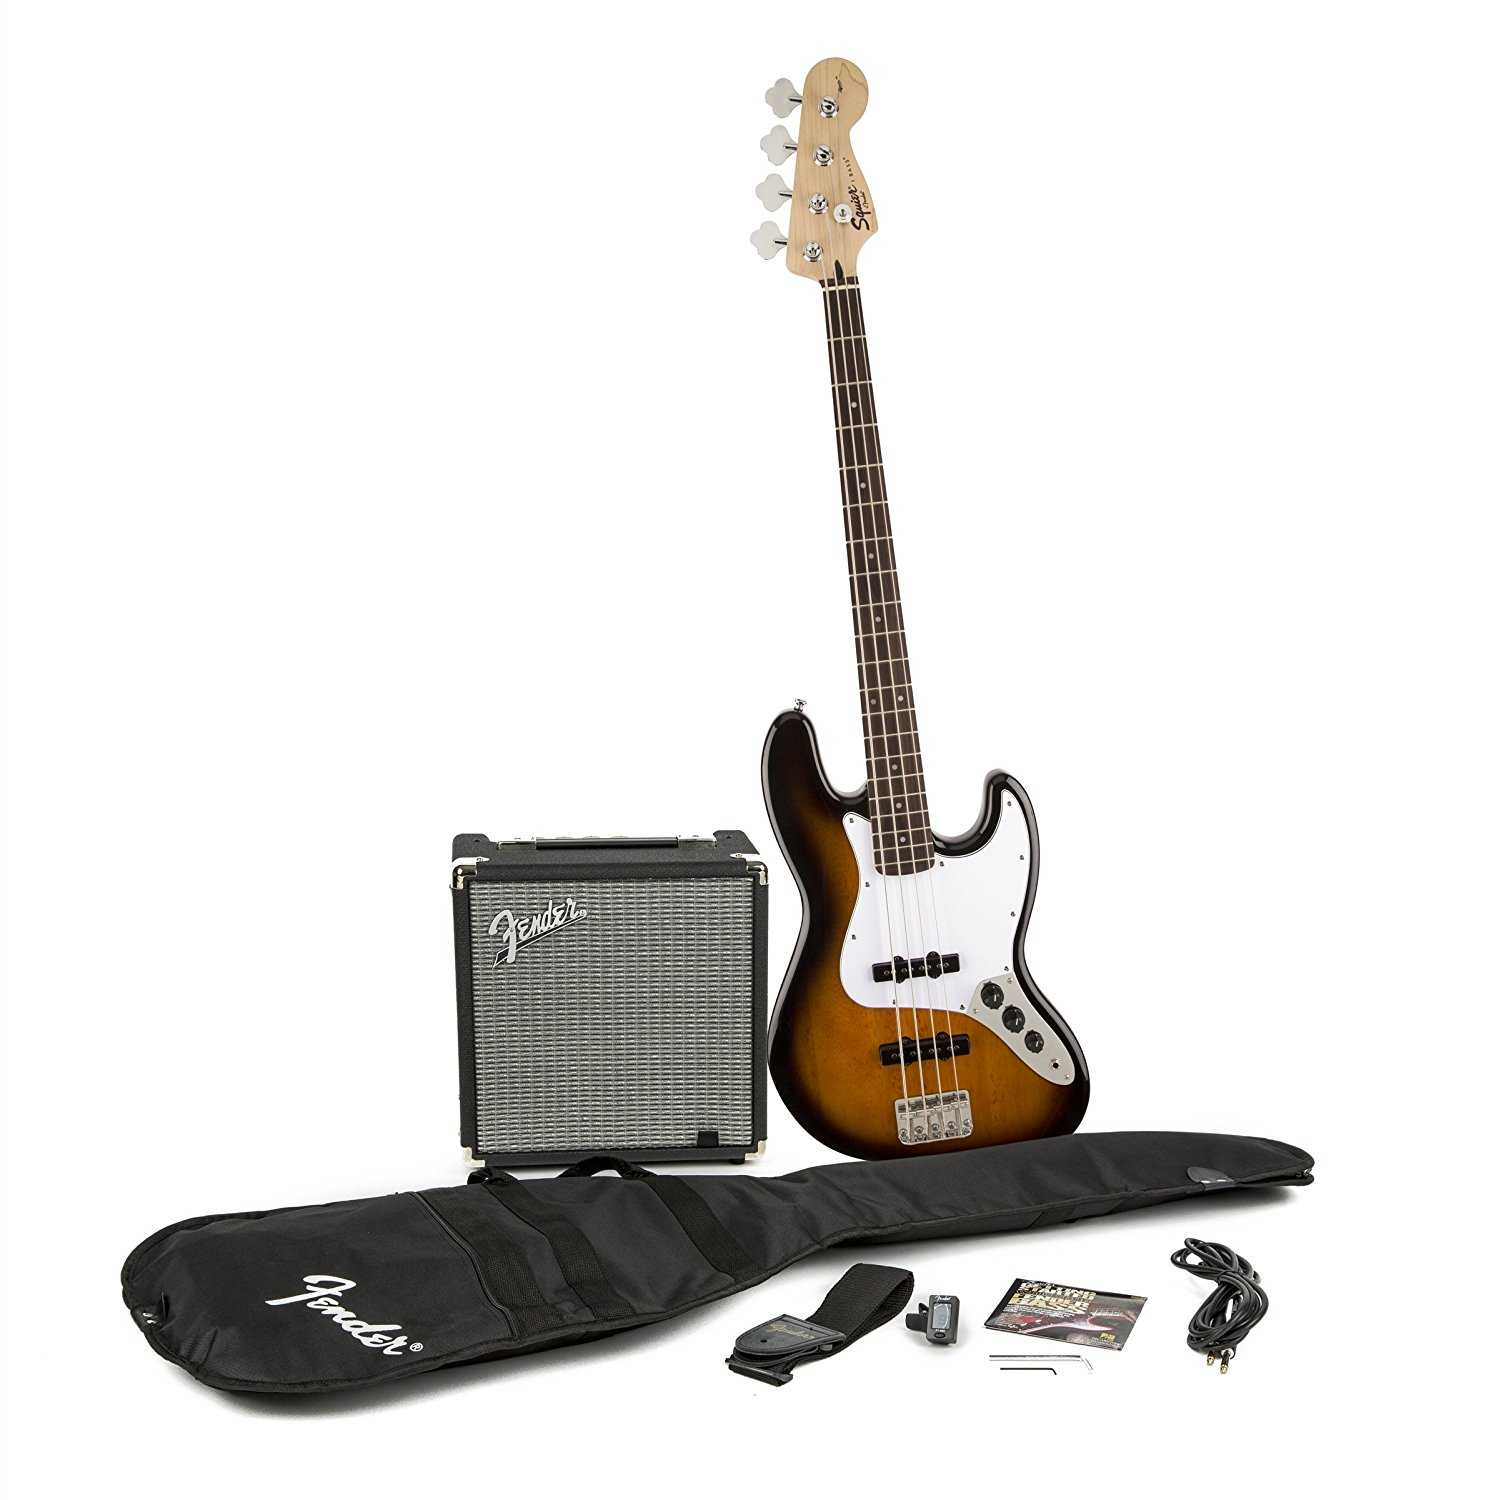 fender squier jazz bass for beginner review oia music. Black Bedroom Furniture Sets. Home Design Ideas